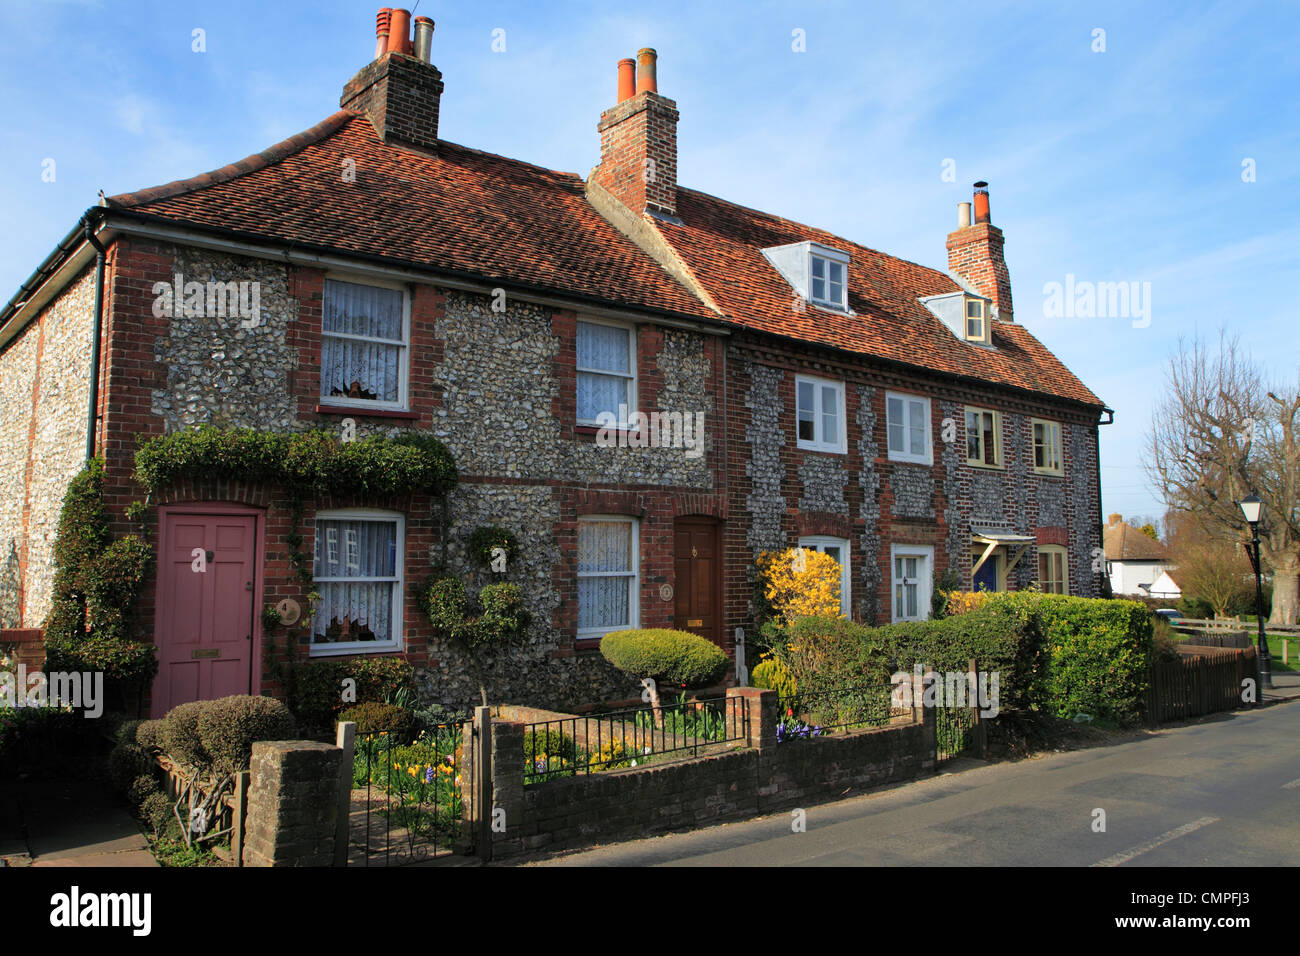 Row of traditional brick and flint cottages, Downe, Kent UK - Stock Image